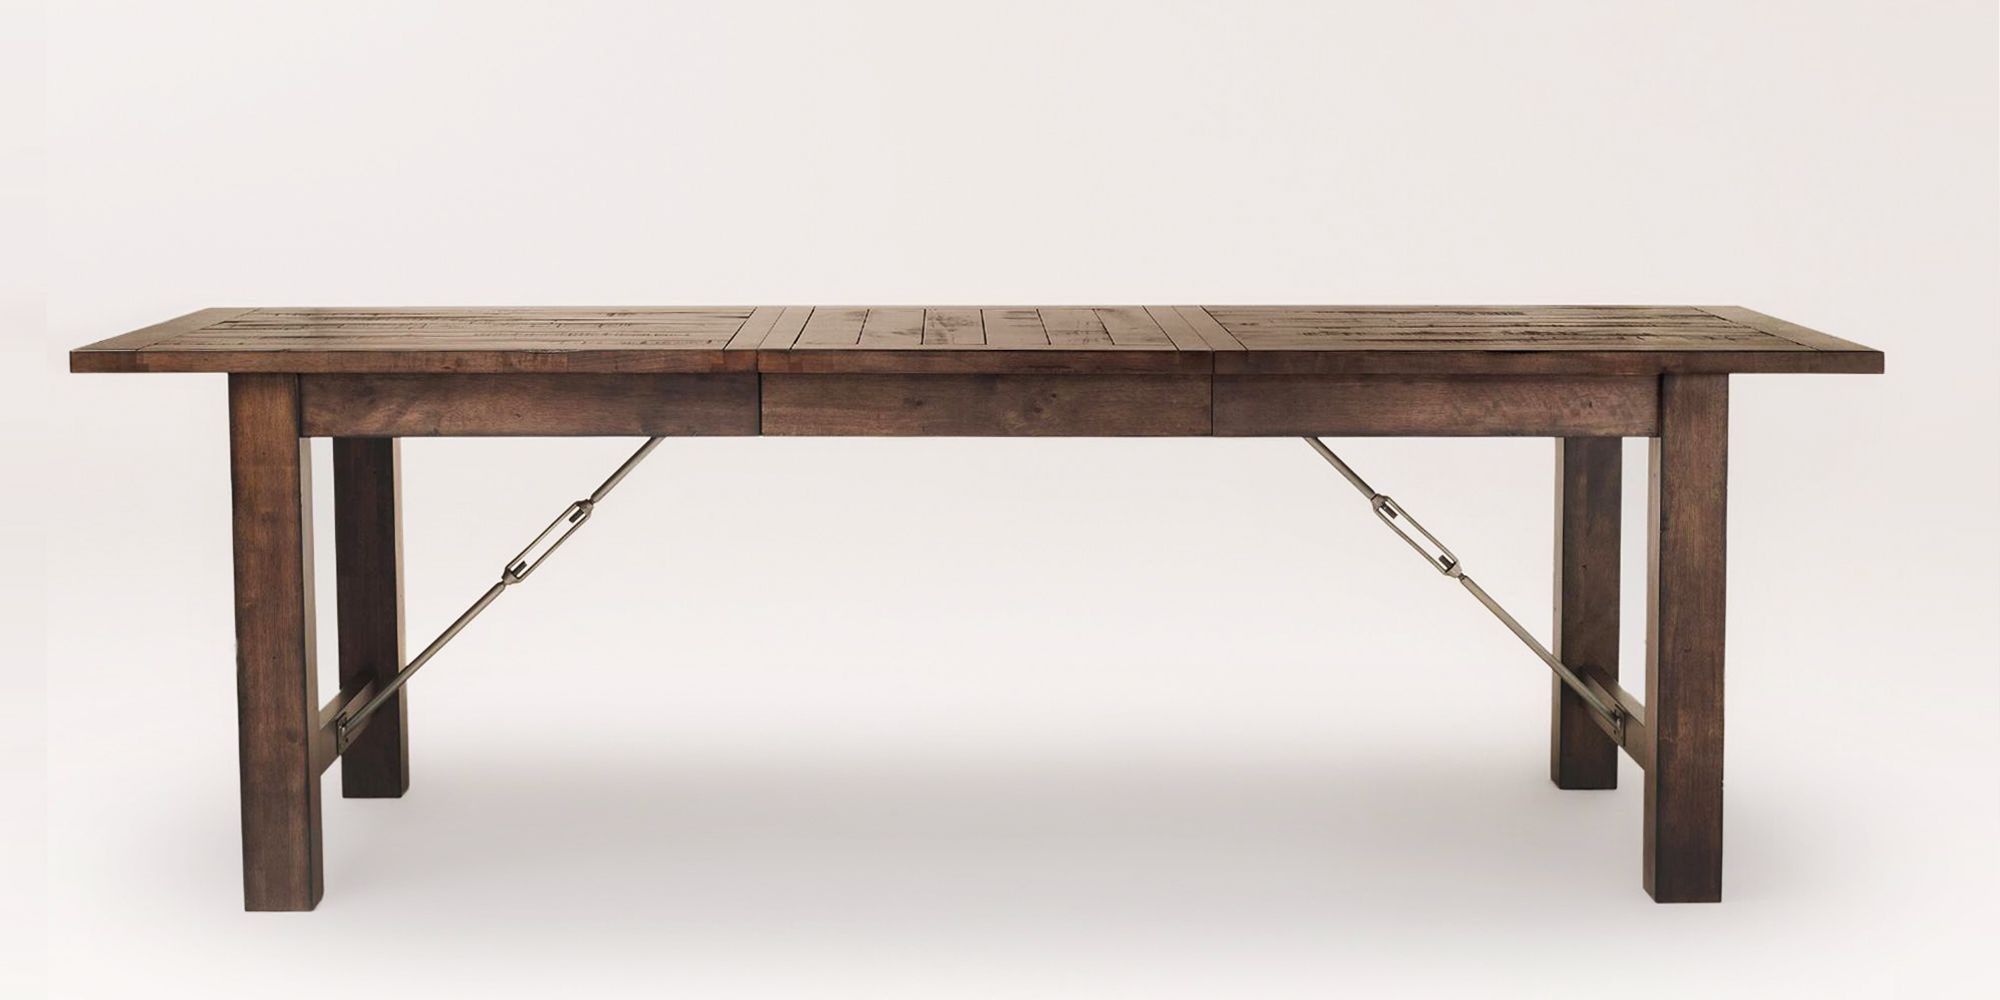 Acacia Wood Top Dining Tables With Iron Legs On Raw Metal With Current 10 Best Rustic Dining Tables In 2018 – Wood Dining Room (View 2 of 25)